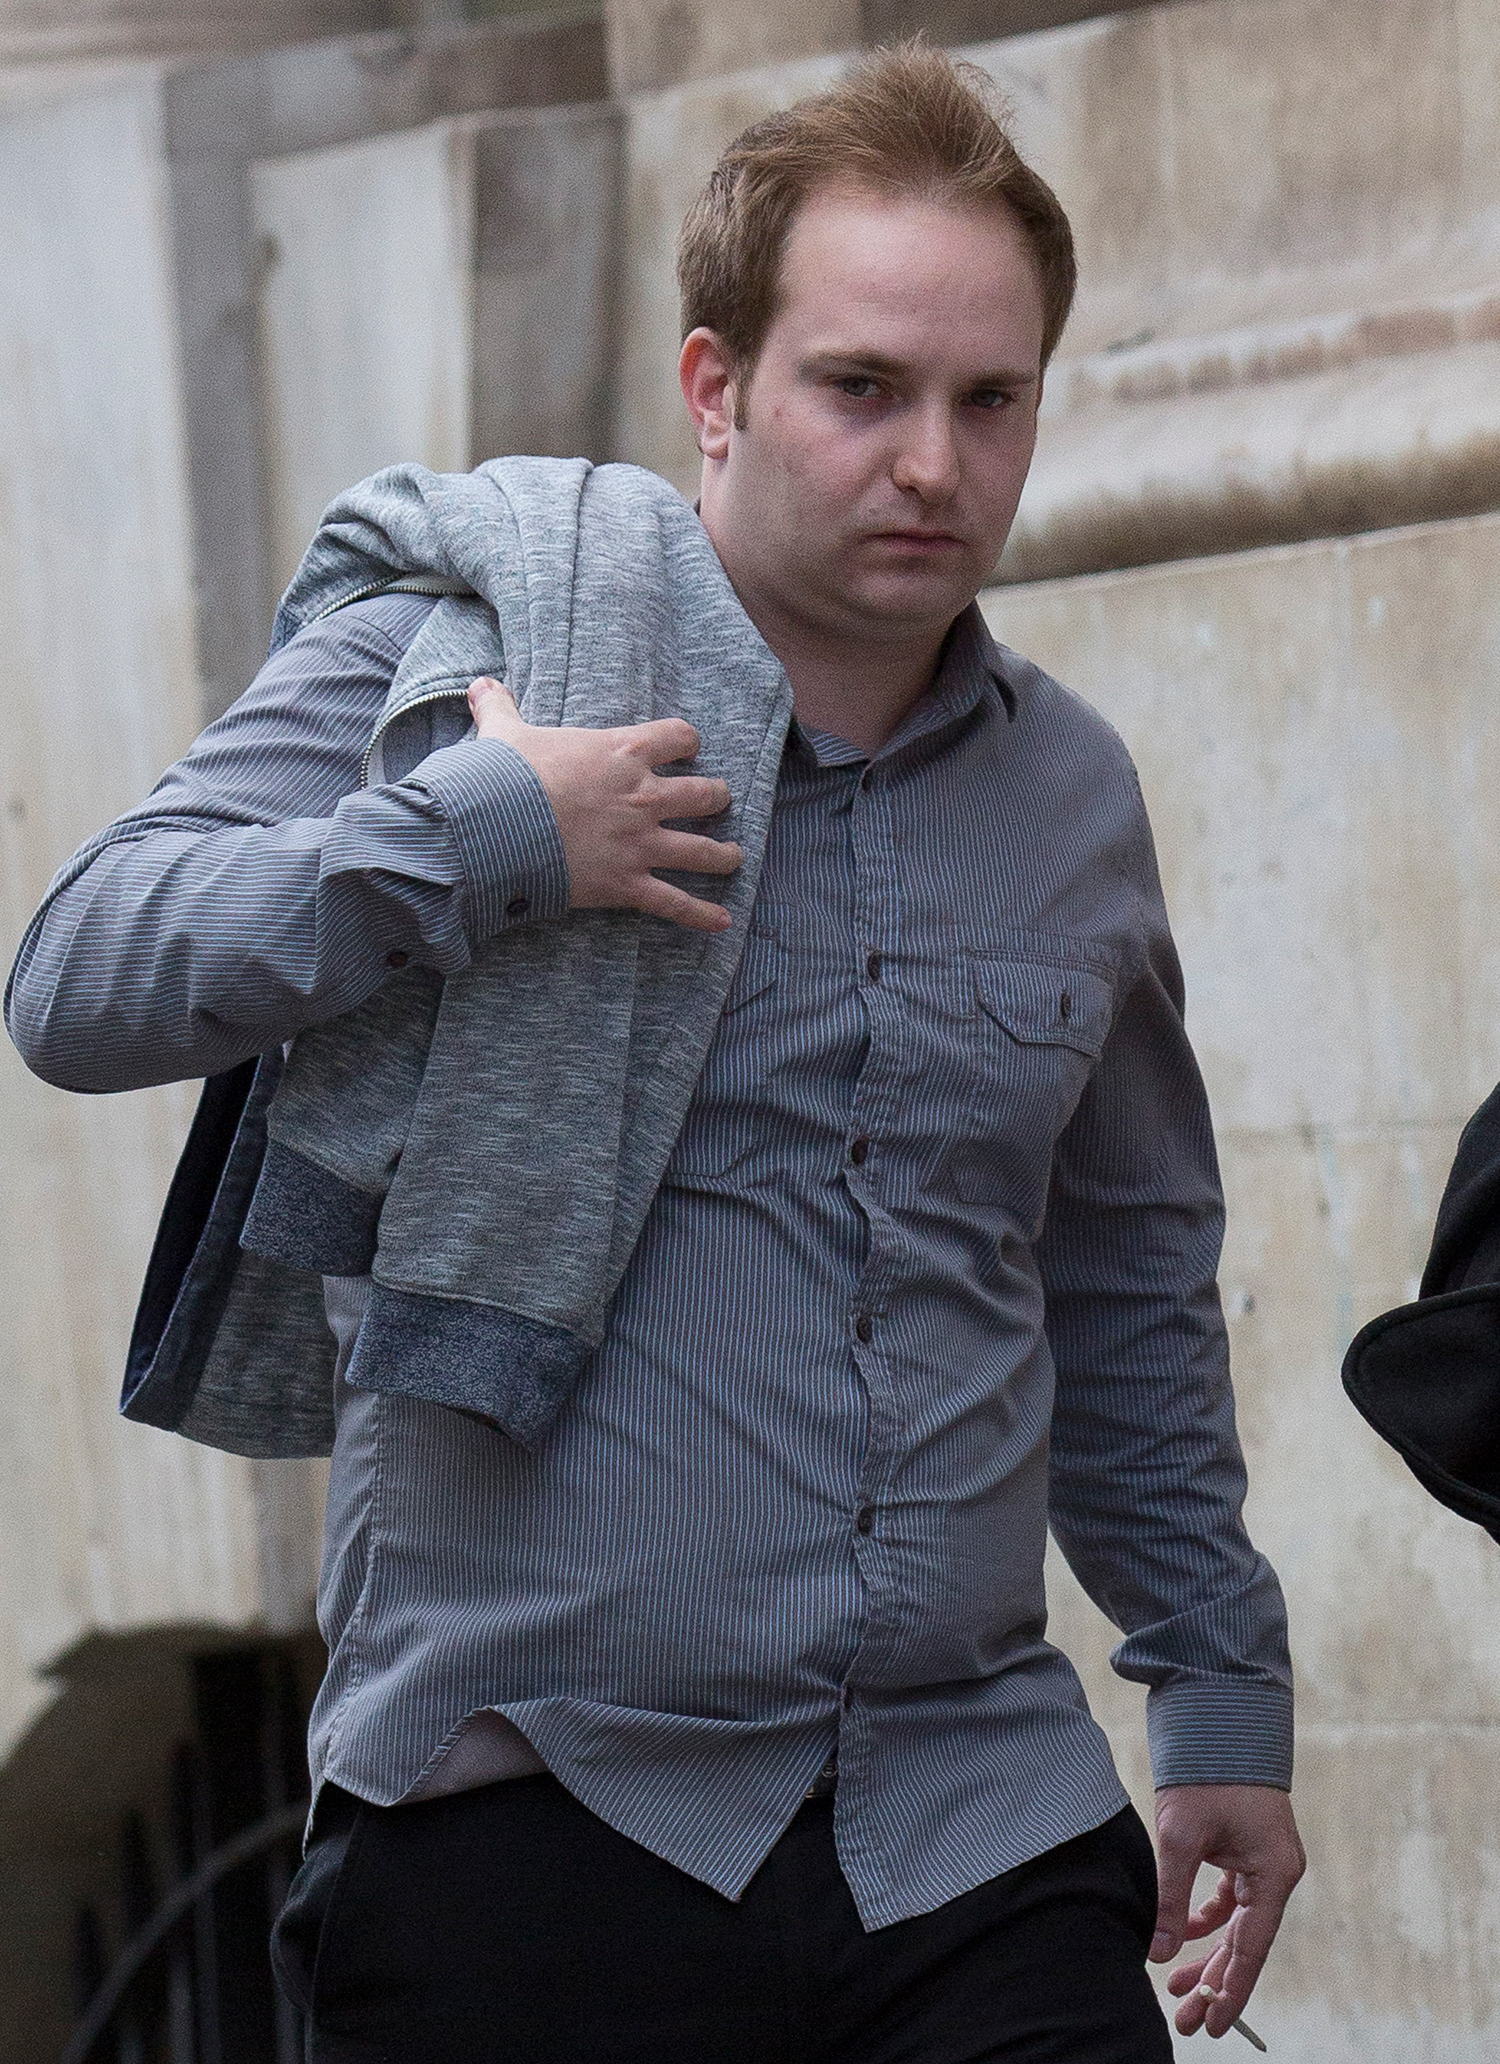 DAD ON TRIAL FOR KILLING HIS 9-M-O SON BY SHAKING HIM BRAIN DAMAGE